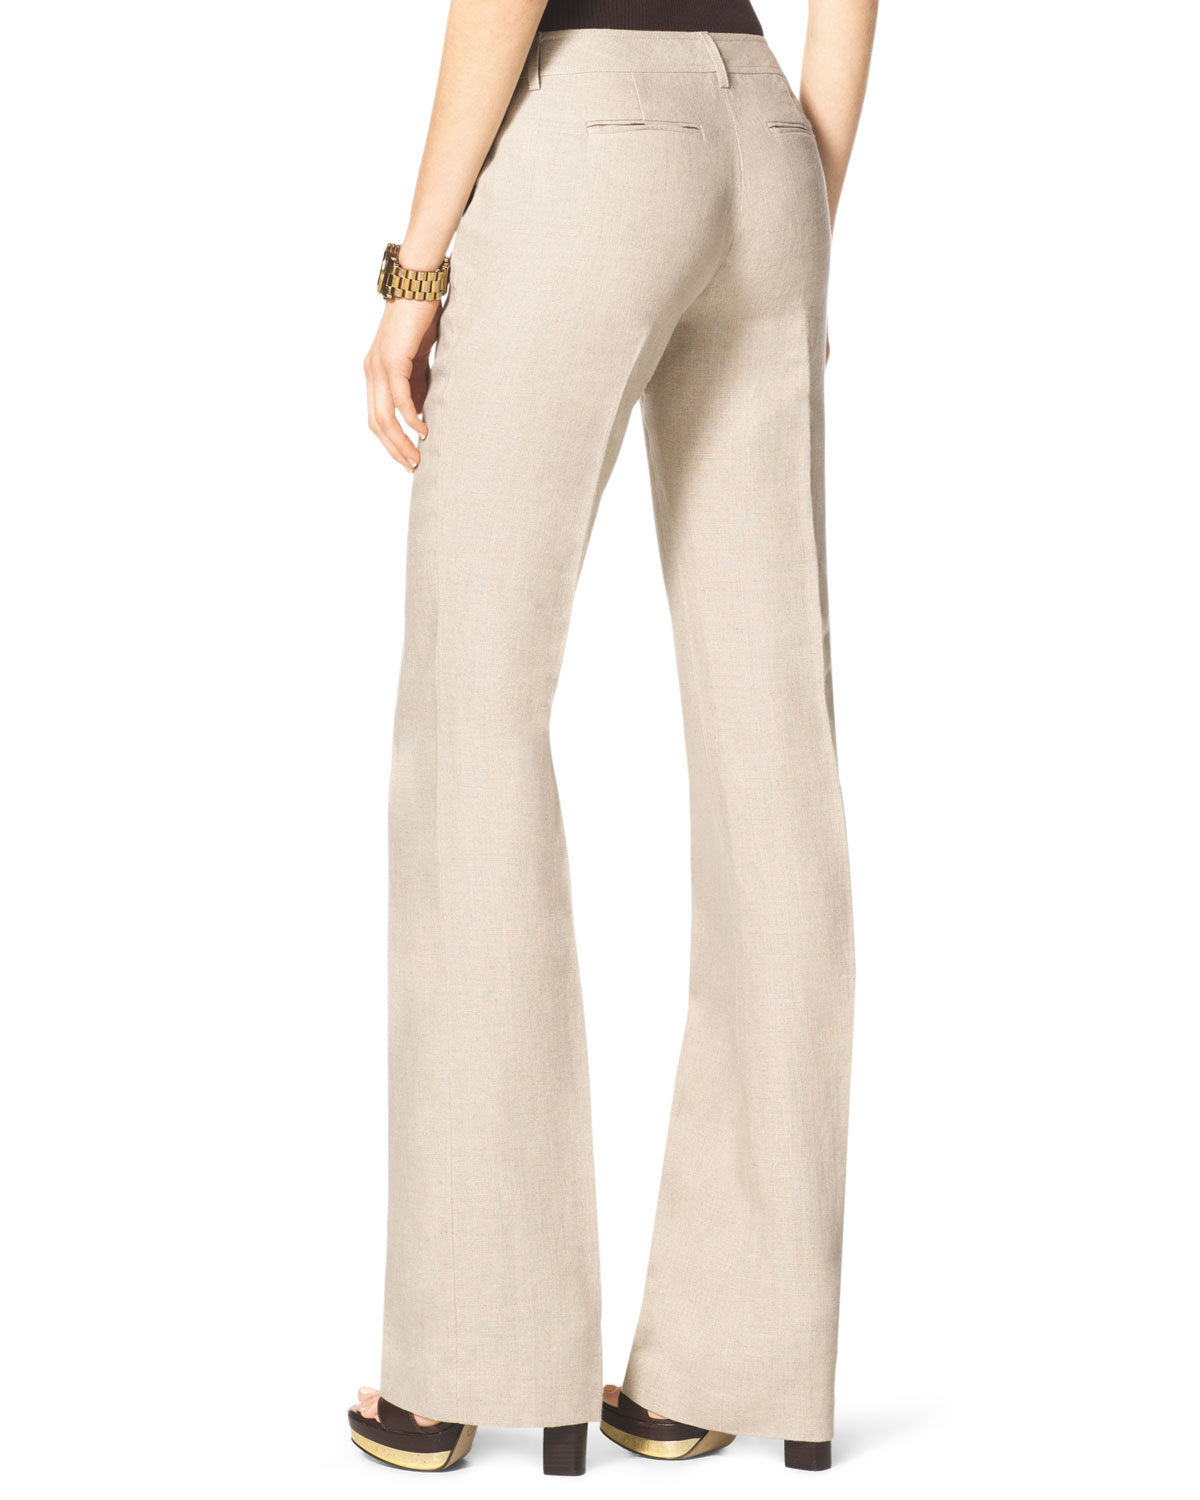 Michael kors Linen Bootcut Trousers in Natural | Lyst